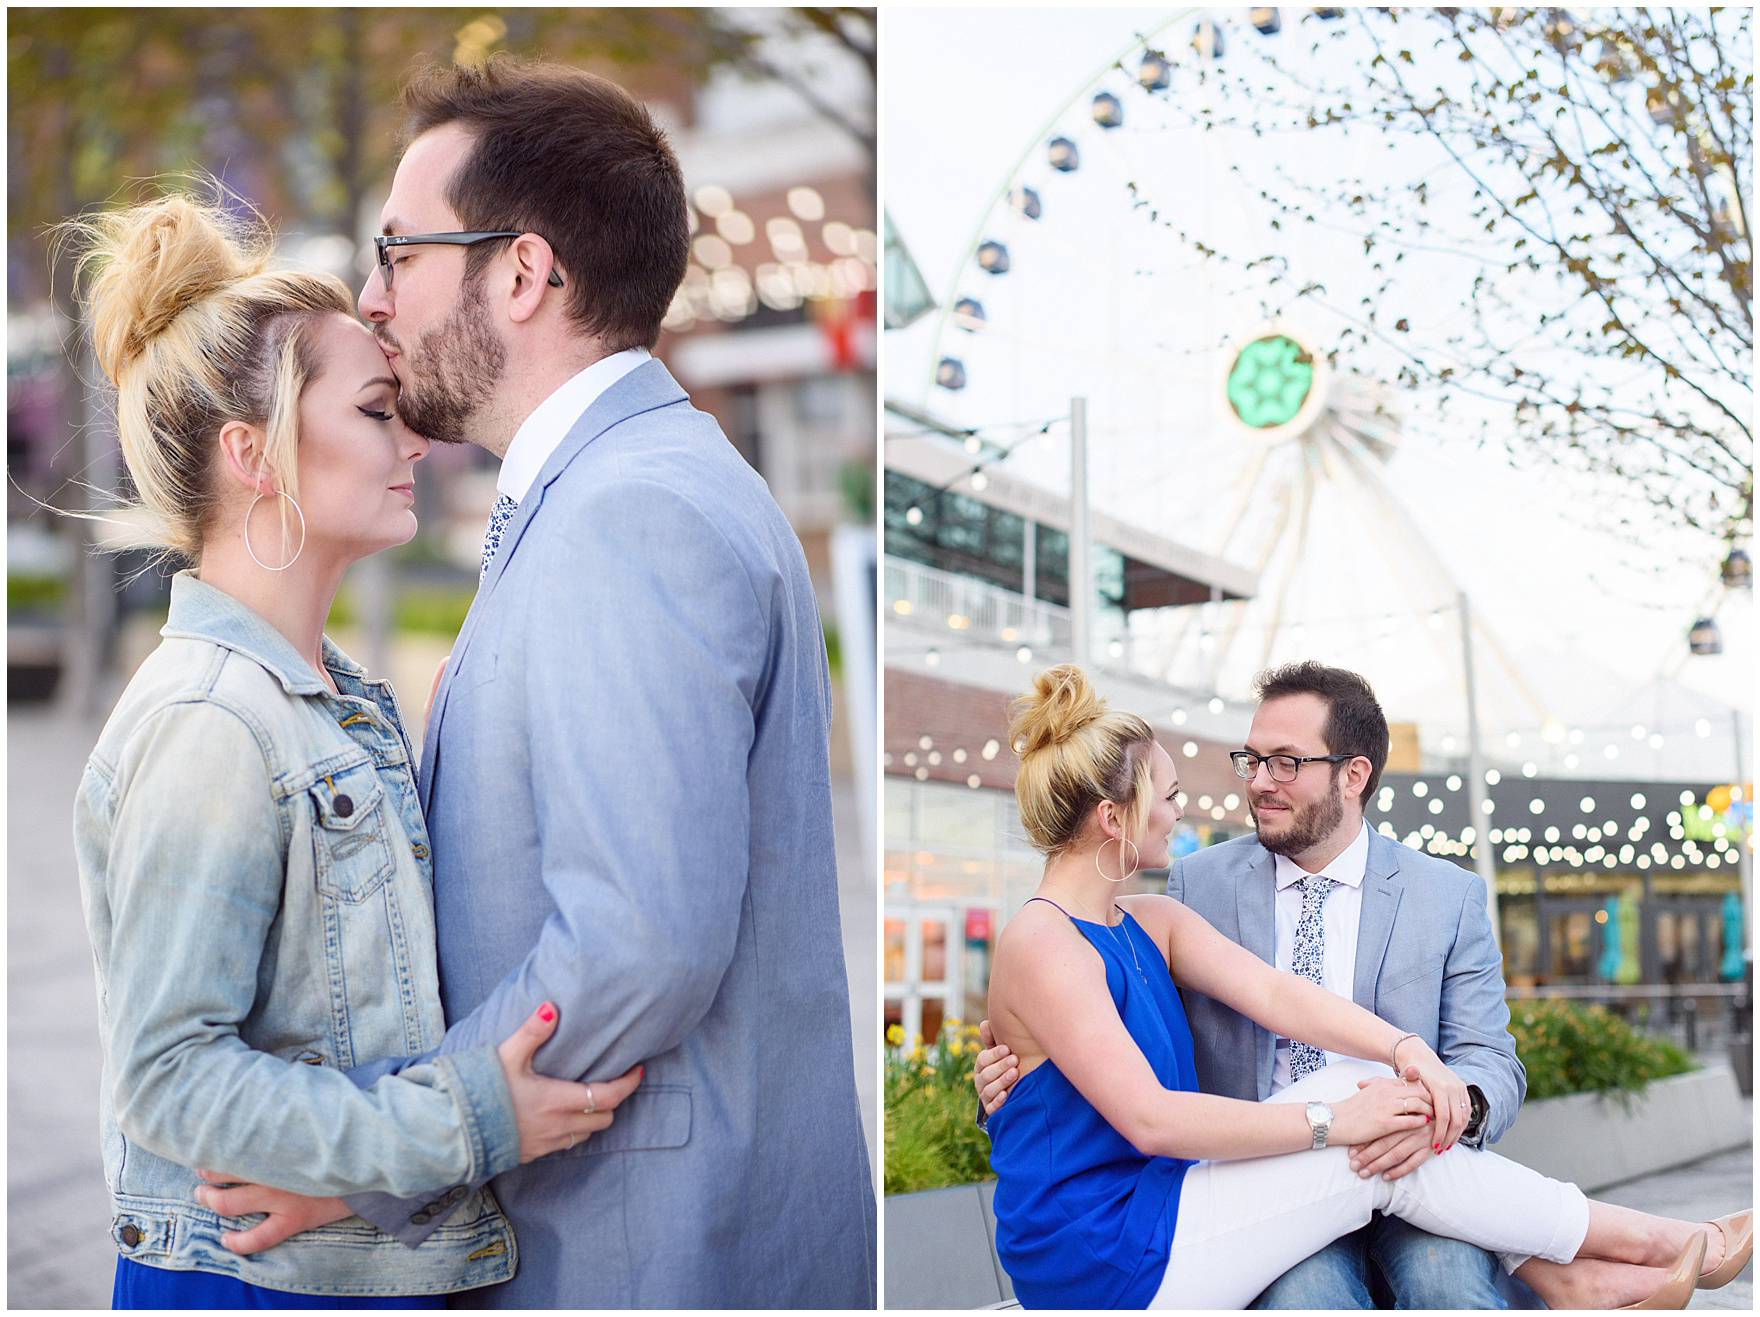 Portraits taken during a Chicago Navy Pier engagement photography session.